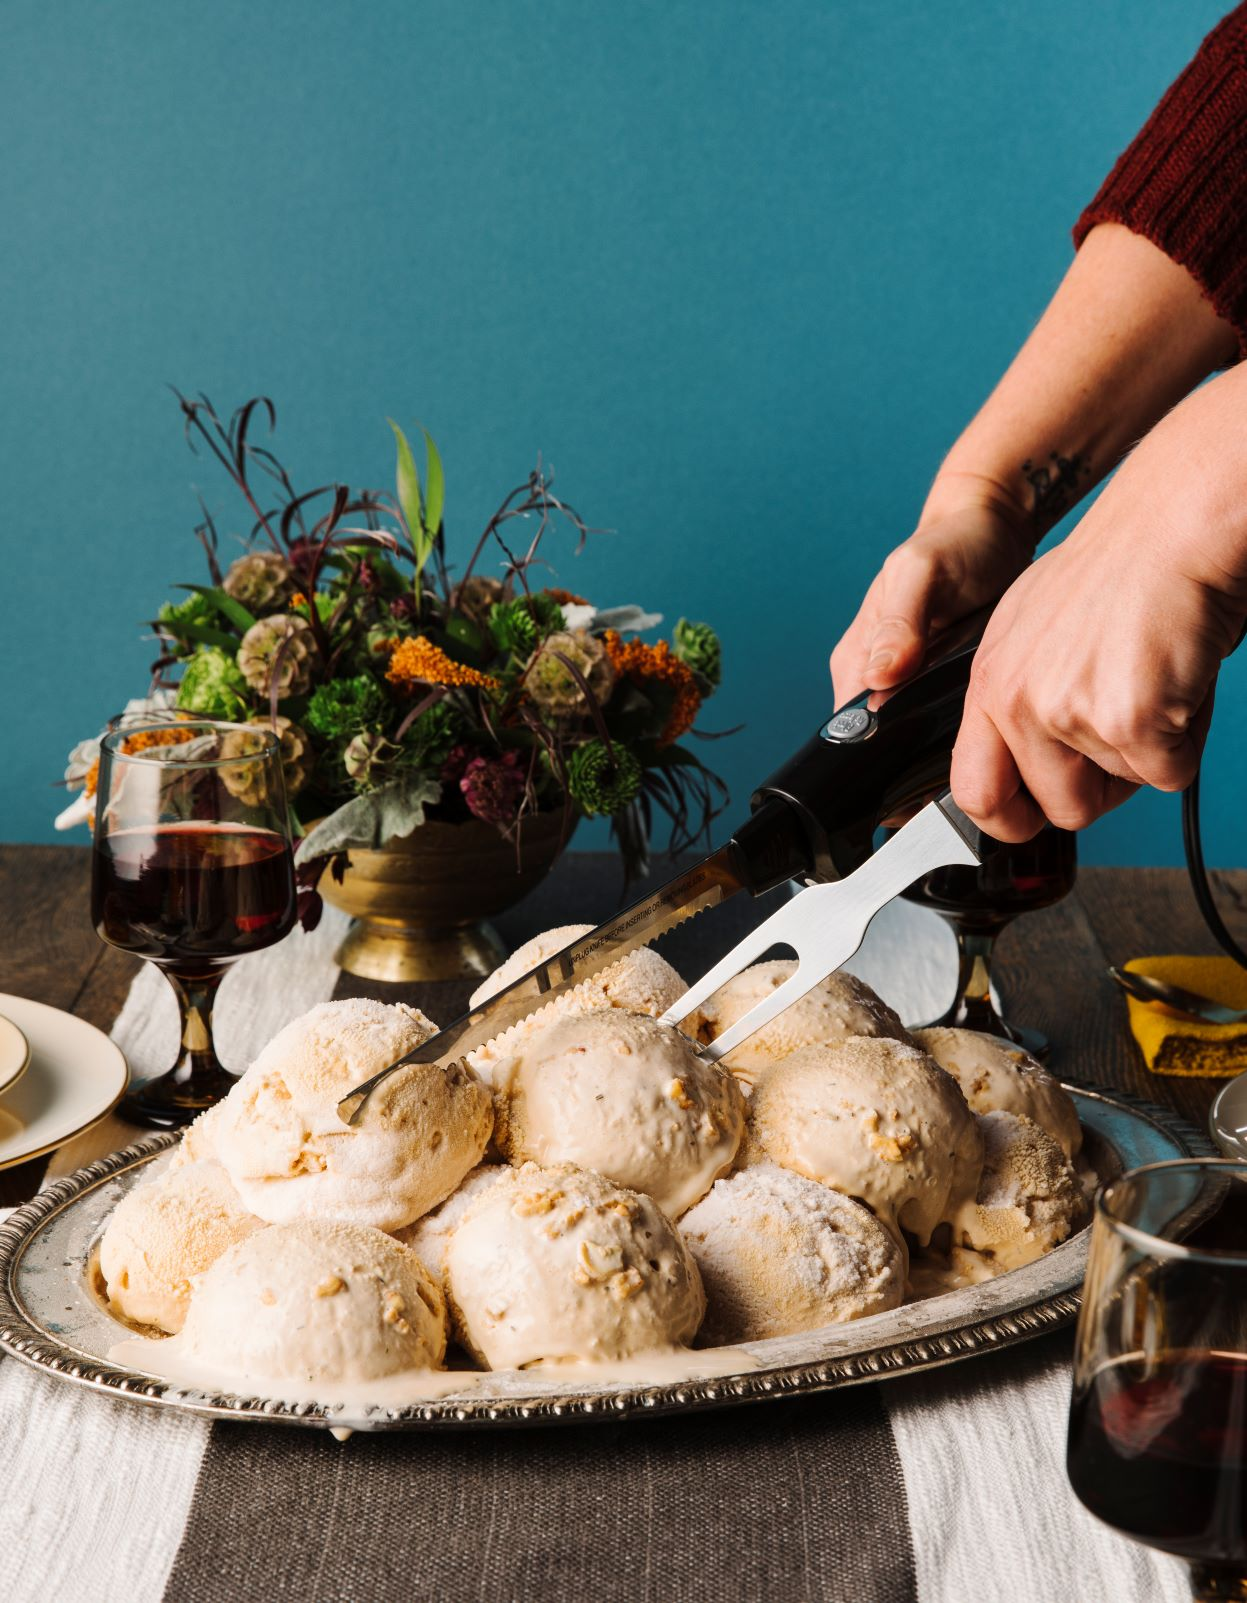 Salt & Straw has announced Thanksgiving ice cream flavors. (Image: Salt & Straw)